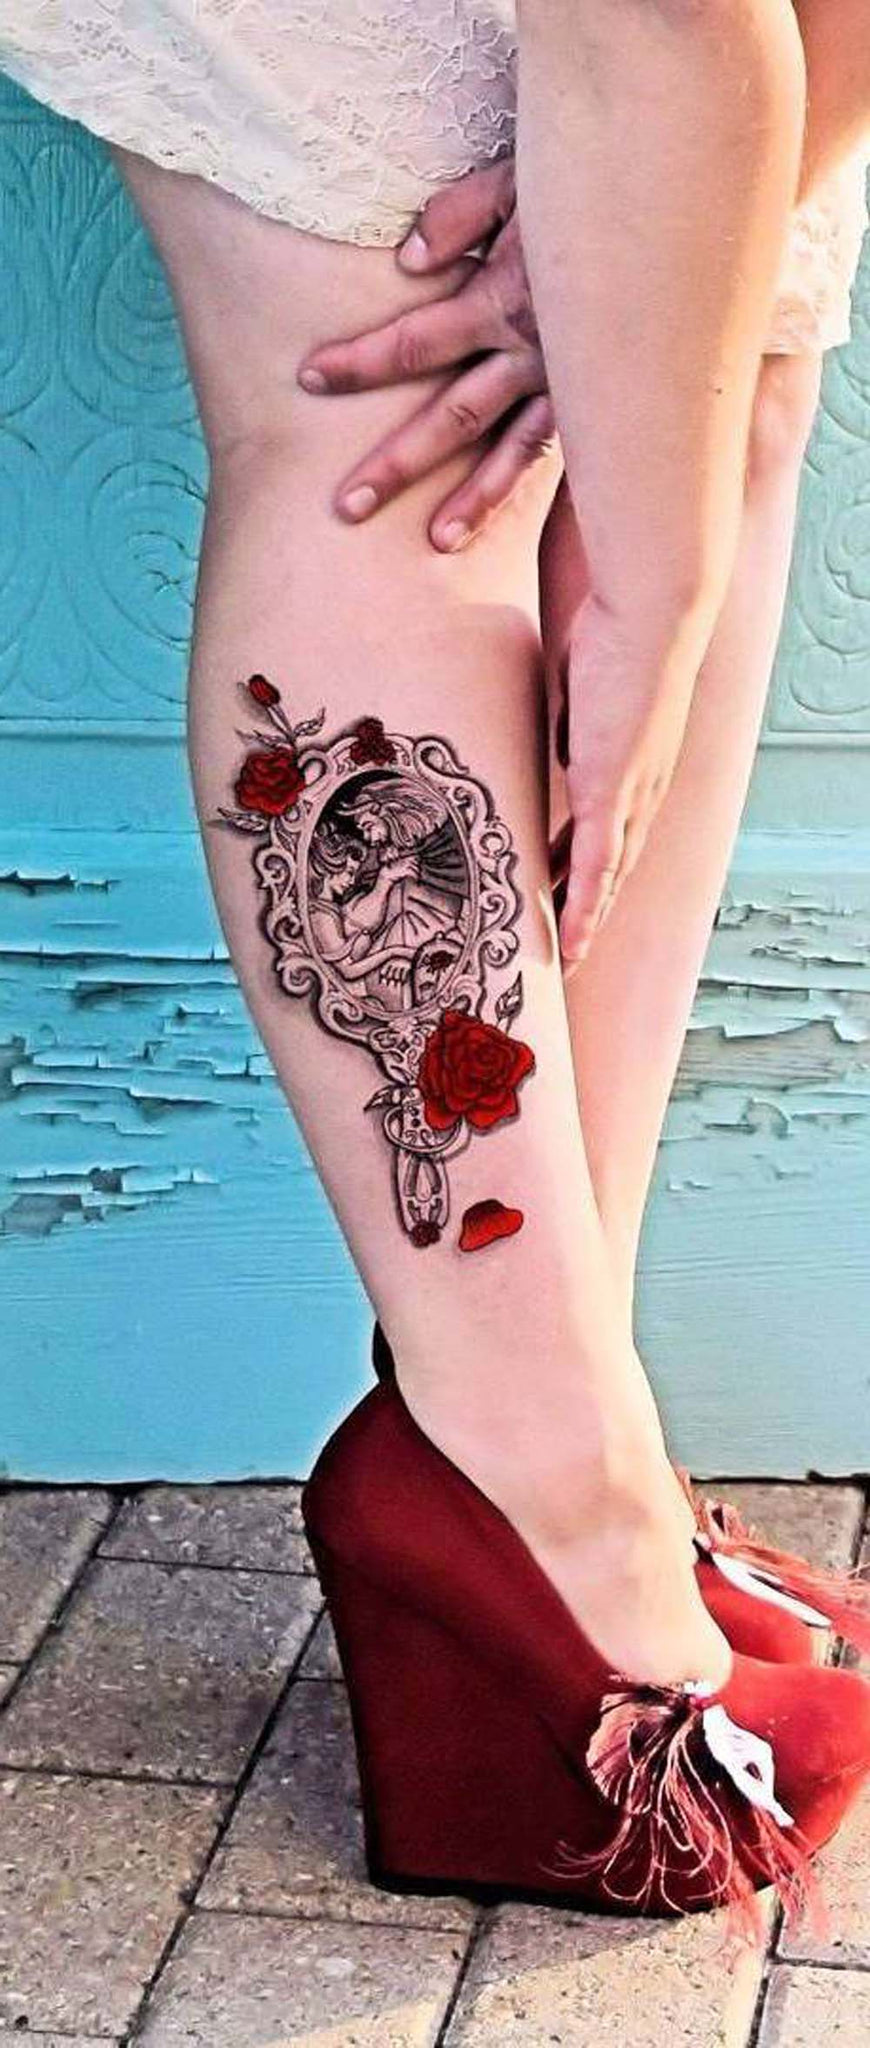 Beauty and the Beast Mirror Rose Calf Leg Tattoo Ideas for Women -  ideas de tatuaje de flor de becerro de ternera - www.MyBodiArt.com